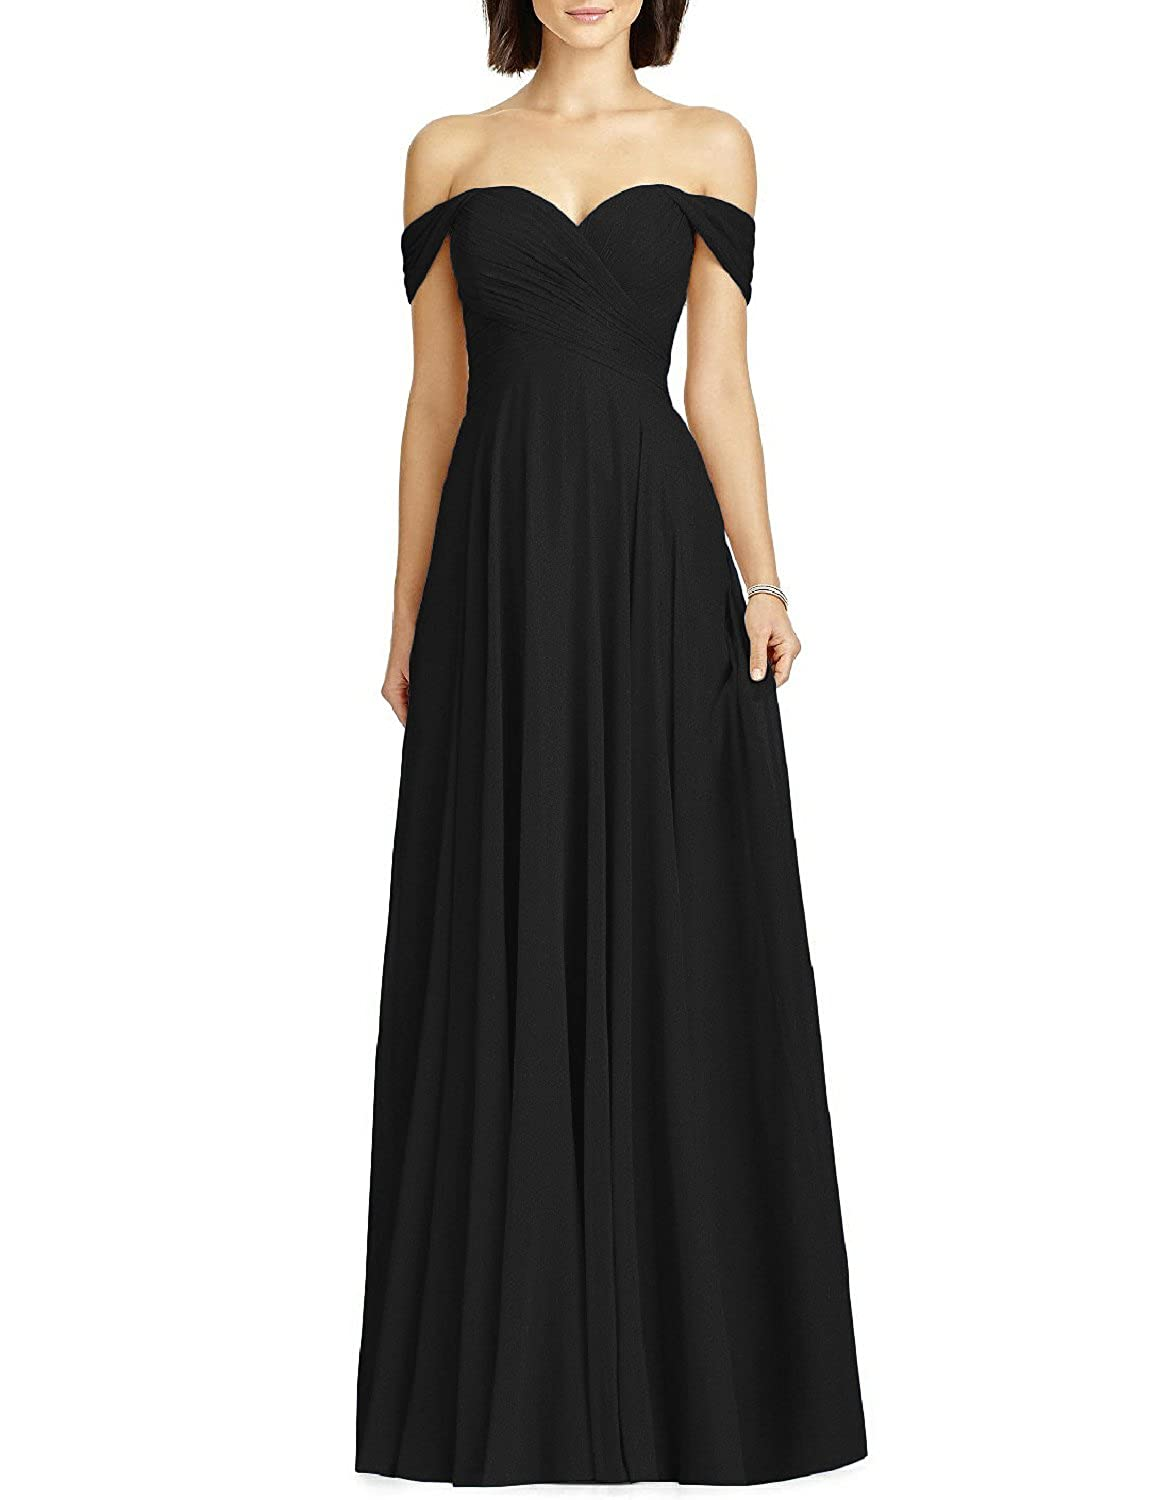 Halter maxi bridesmaids dress plus size